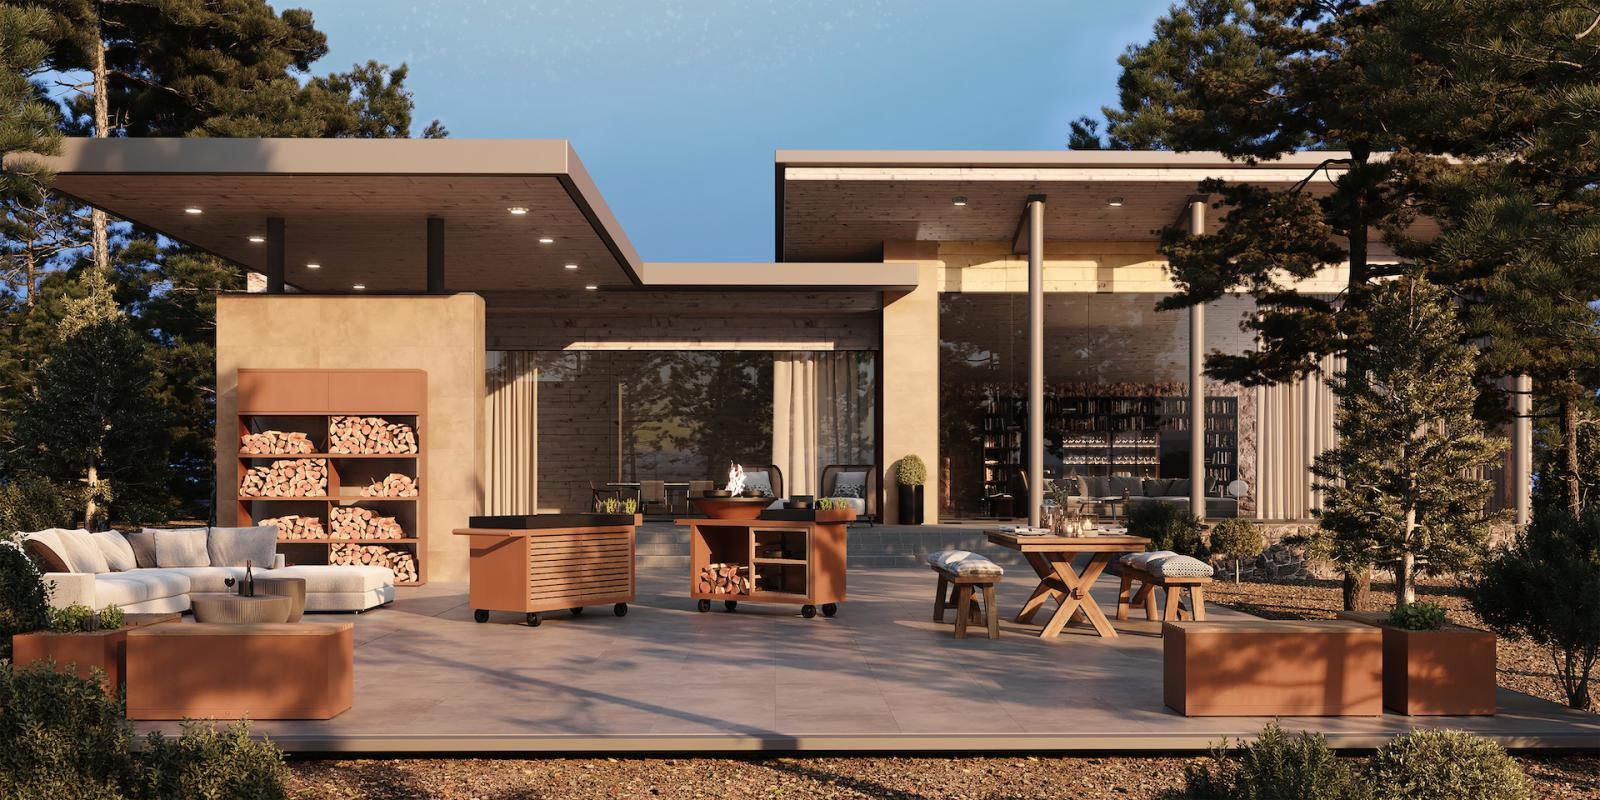 Designed for a new outdoor lifestyle